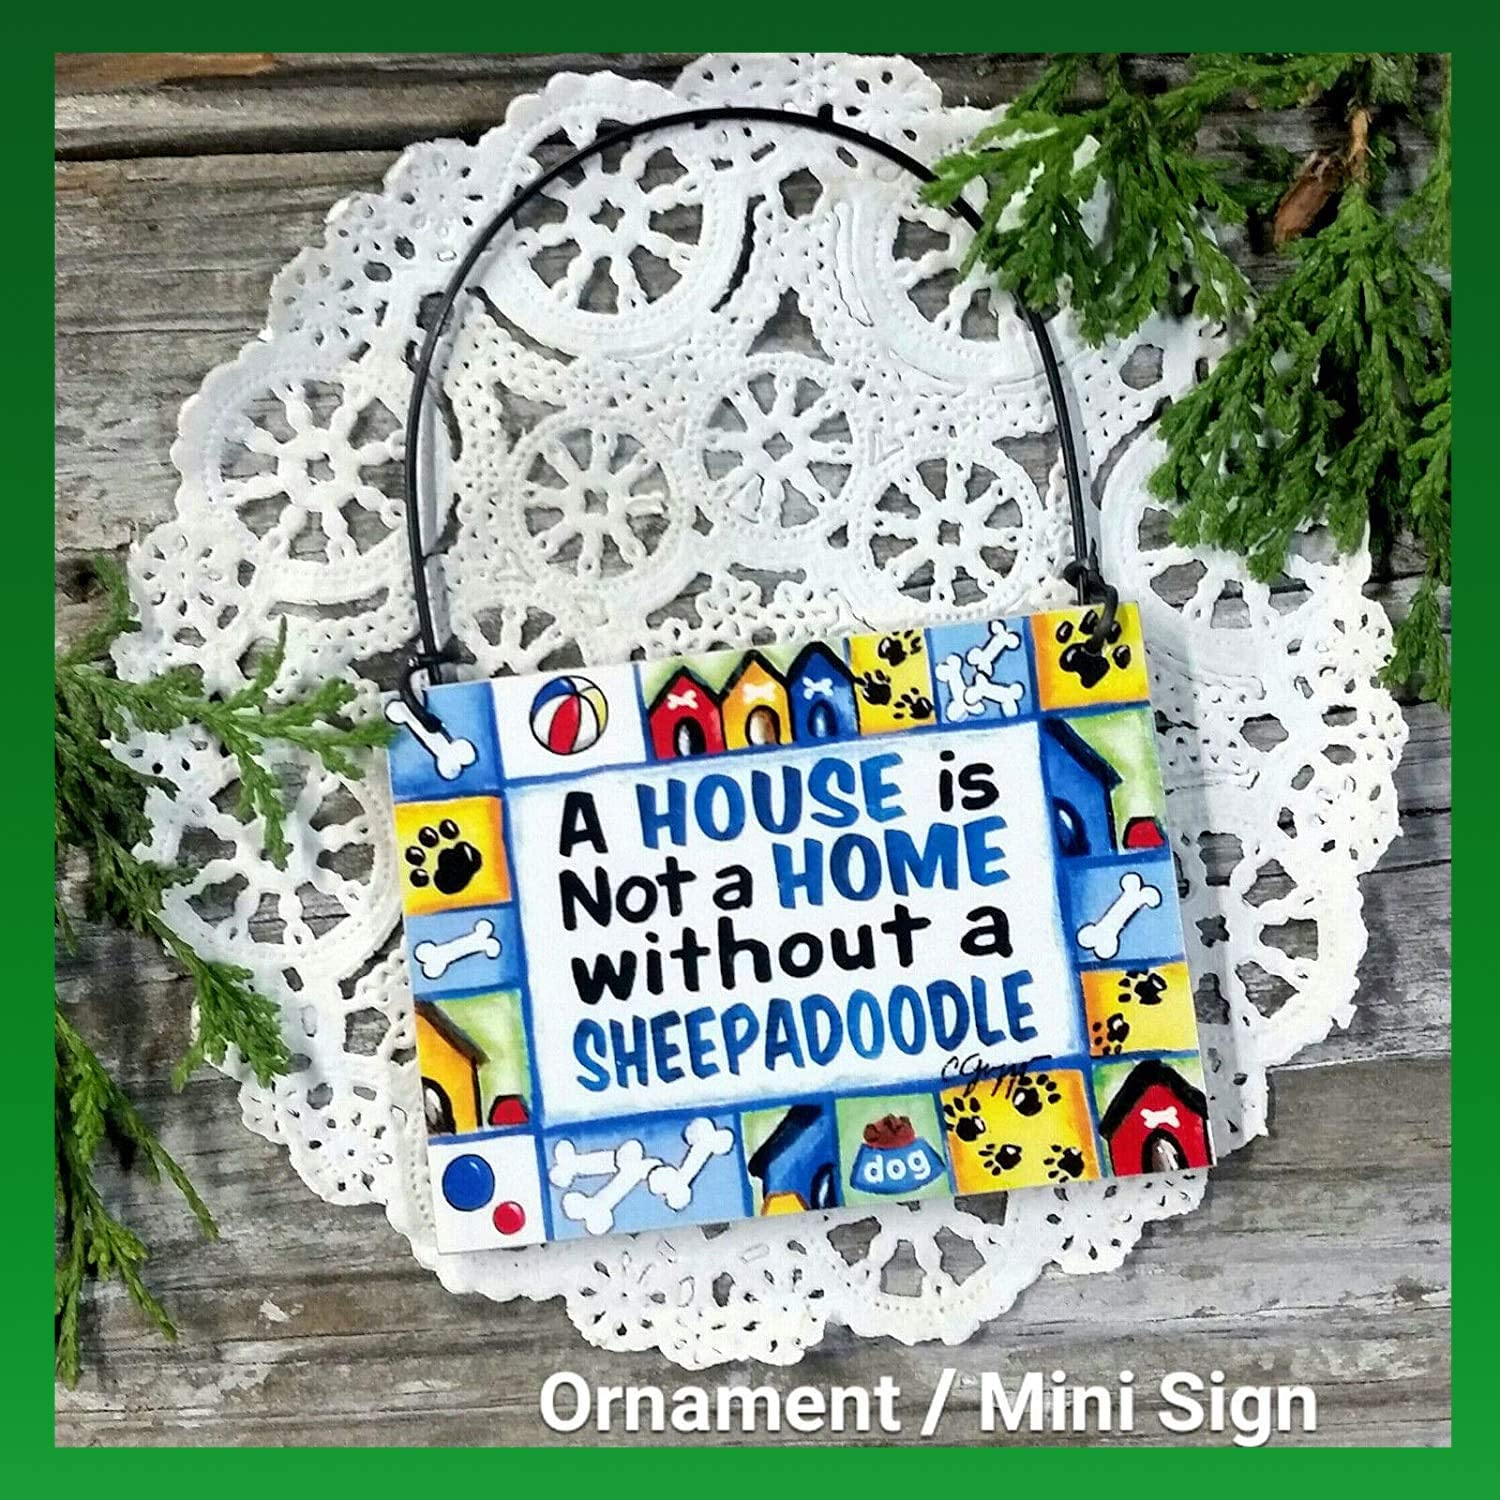 Generic1 Wooden Signs - Deco Mini Sign Sheepadoodle All Breeds JUST Ask! Wood Ornament Gift Made in USA New Wood Ornament - Ideal for Home Office Décor (Size Close to 2-1/2